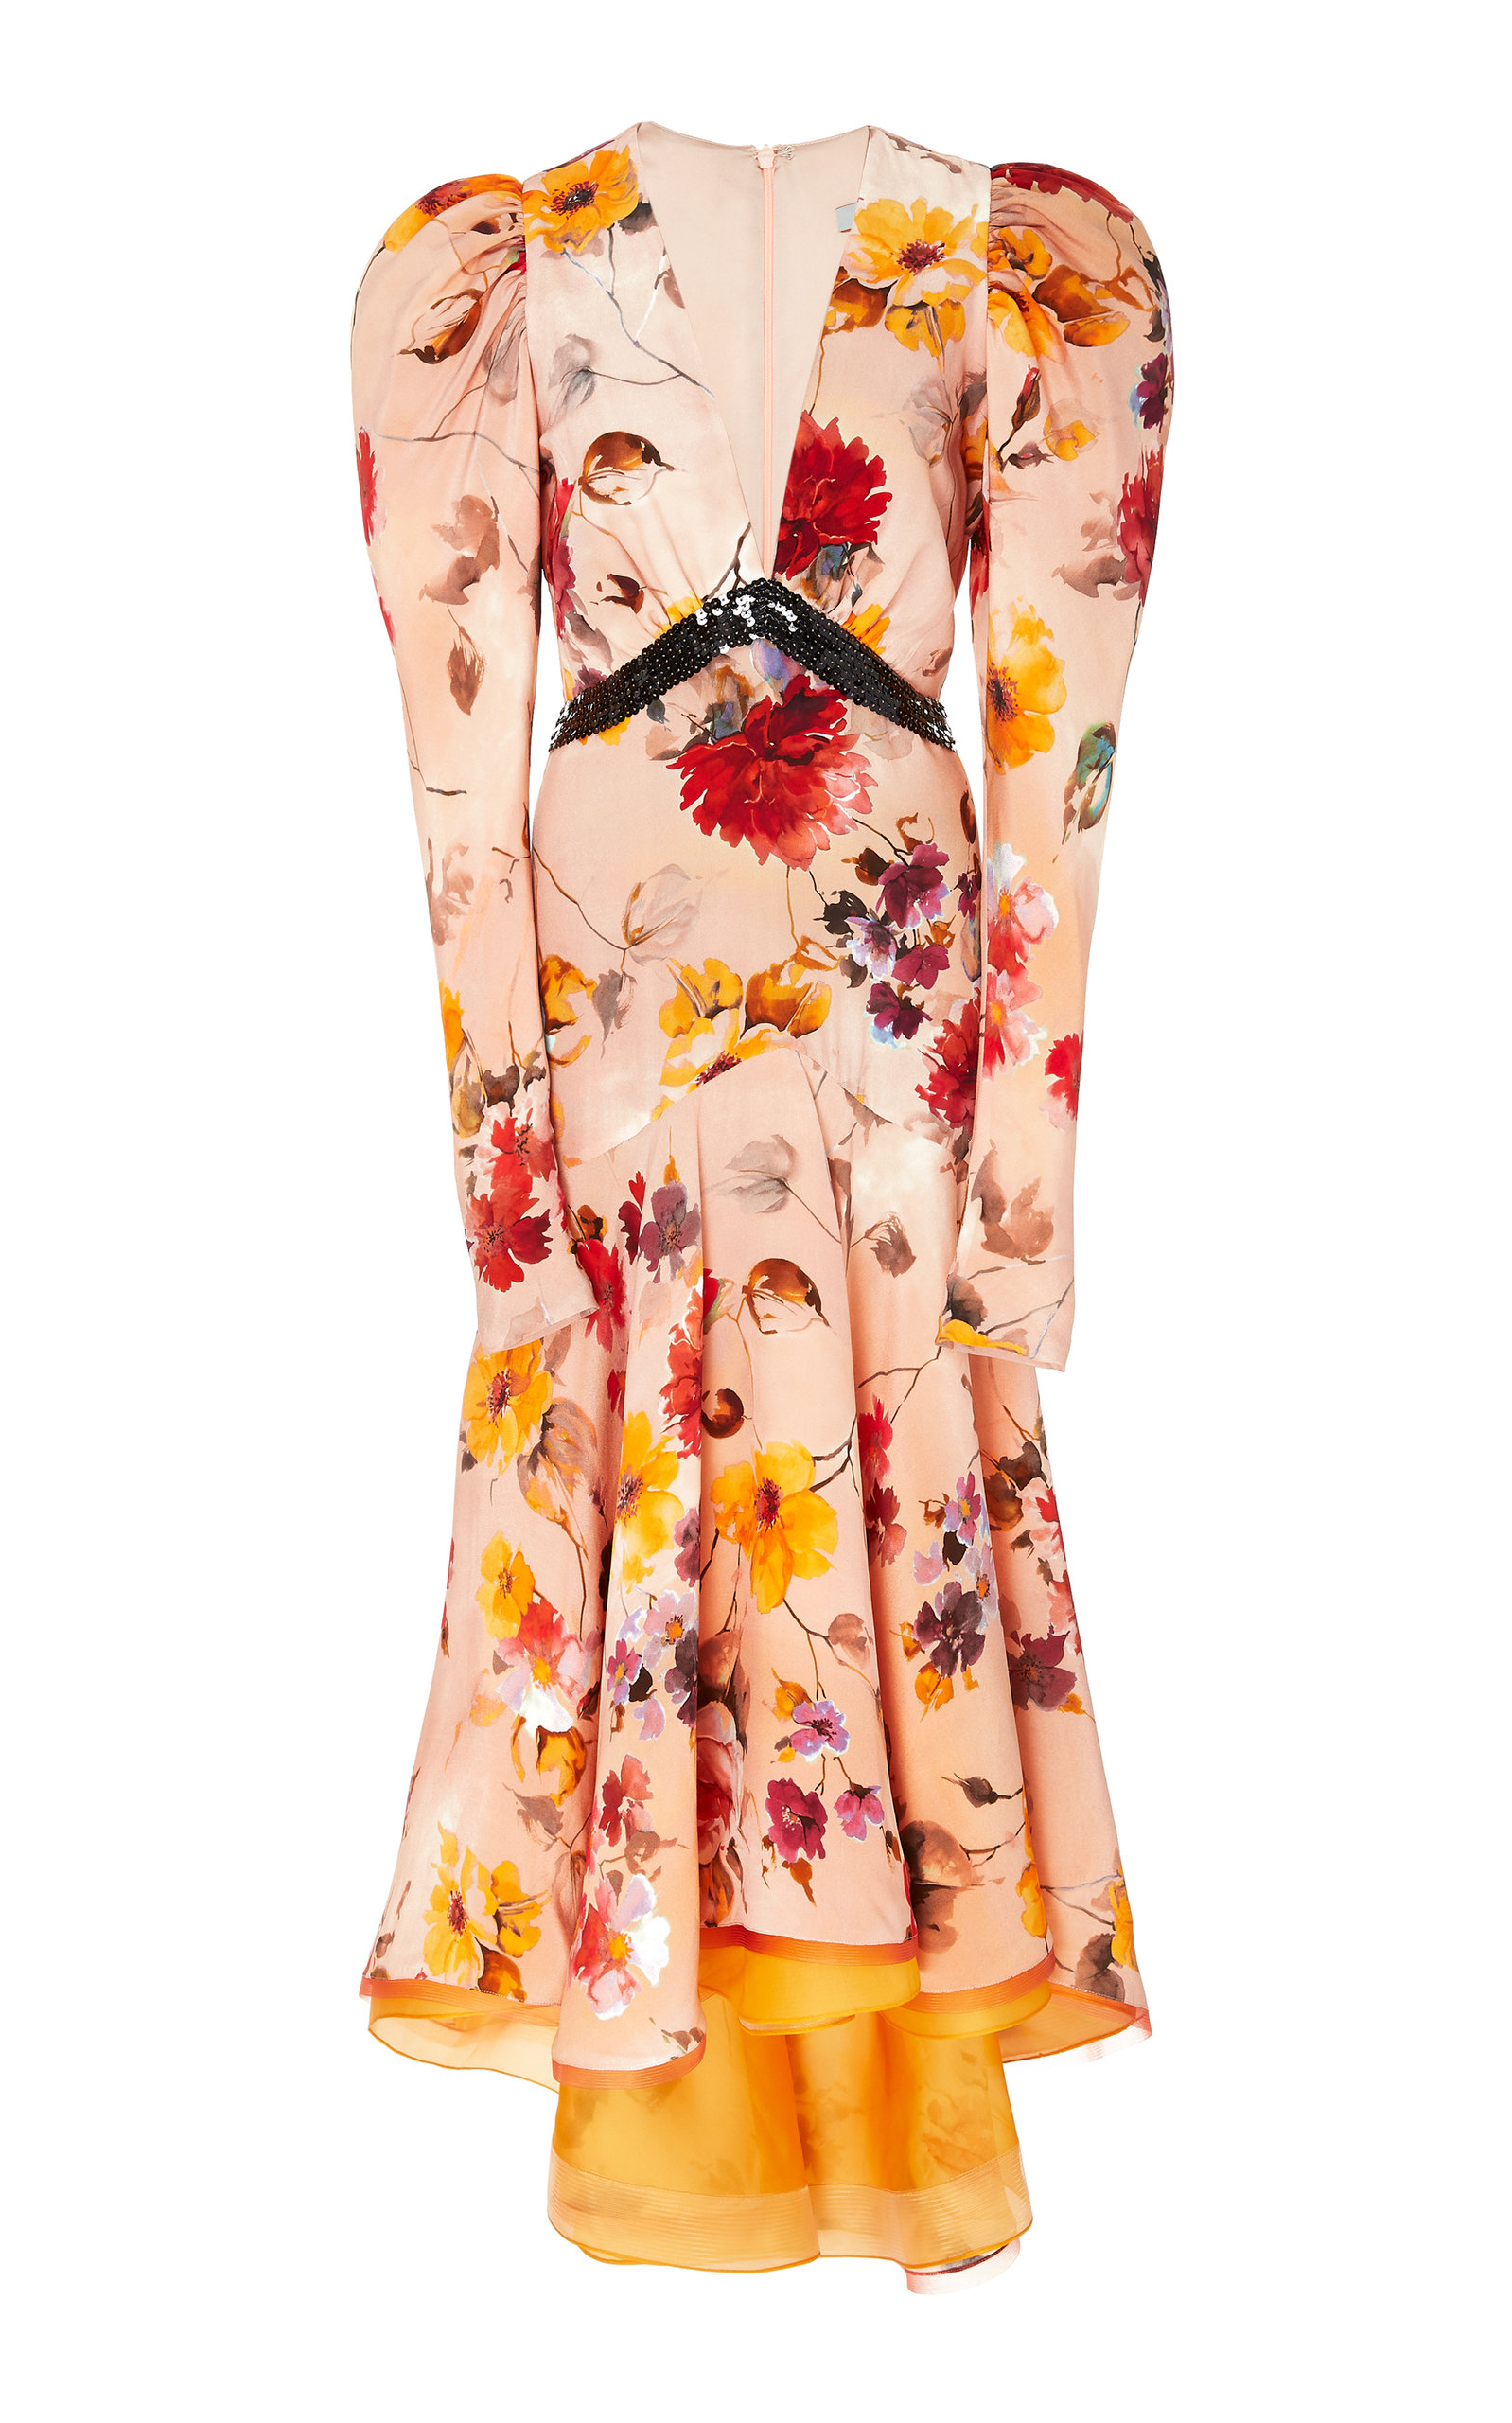 FLORAL POINCIANA DRESS